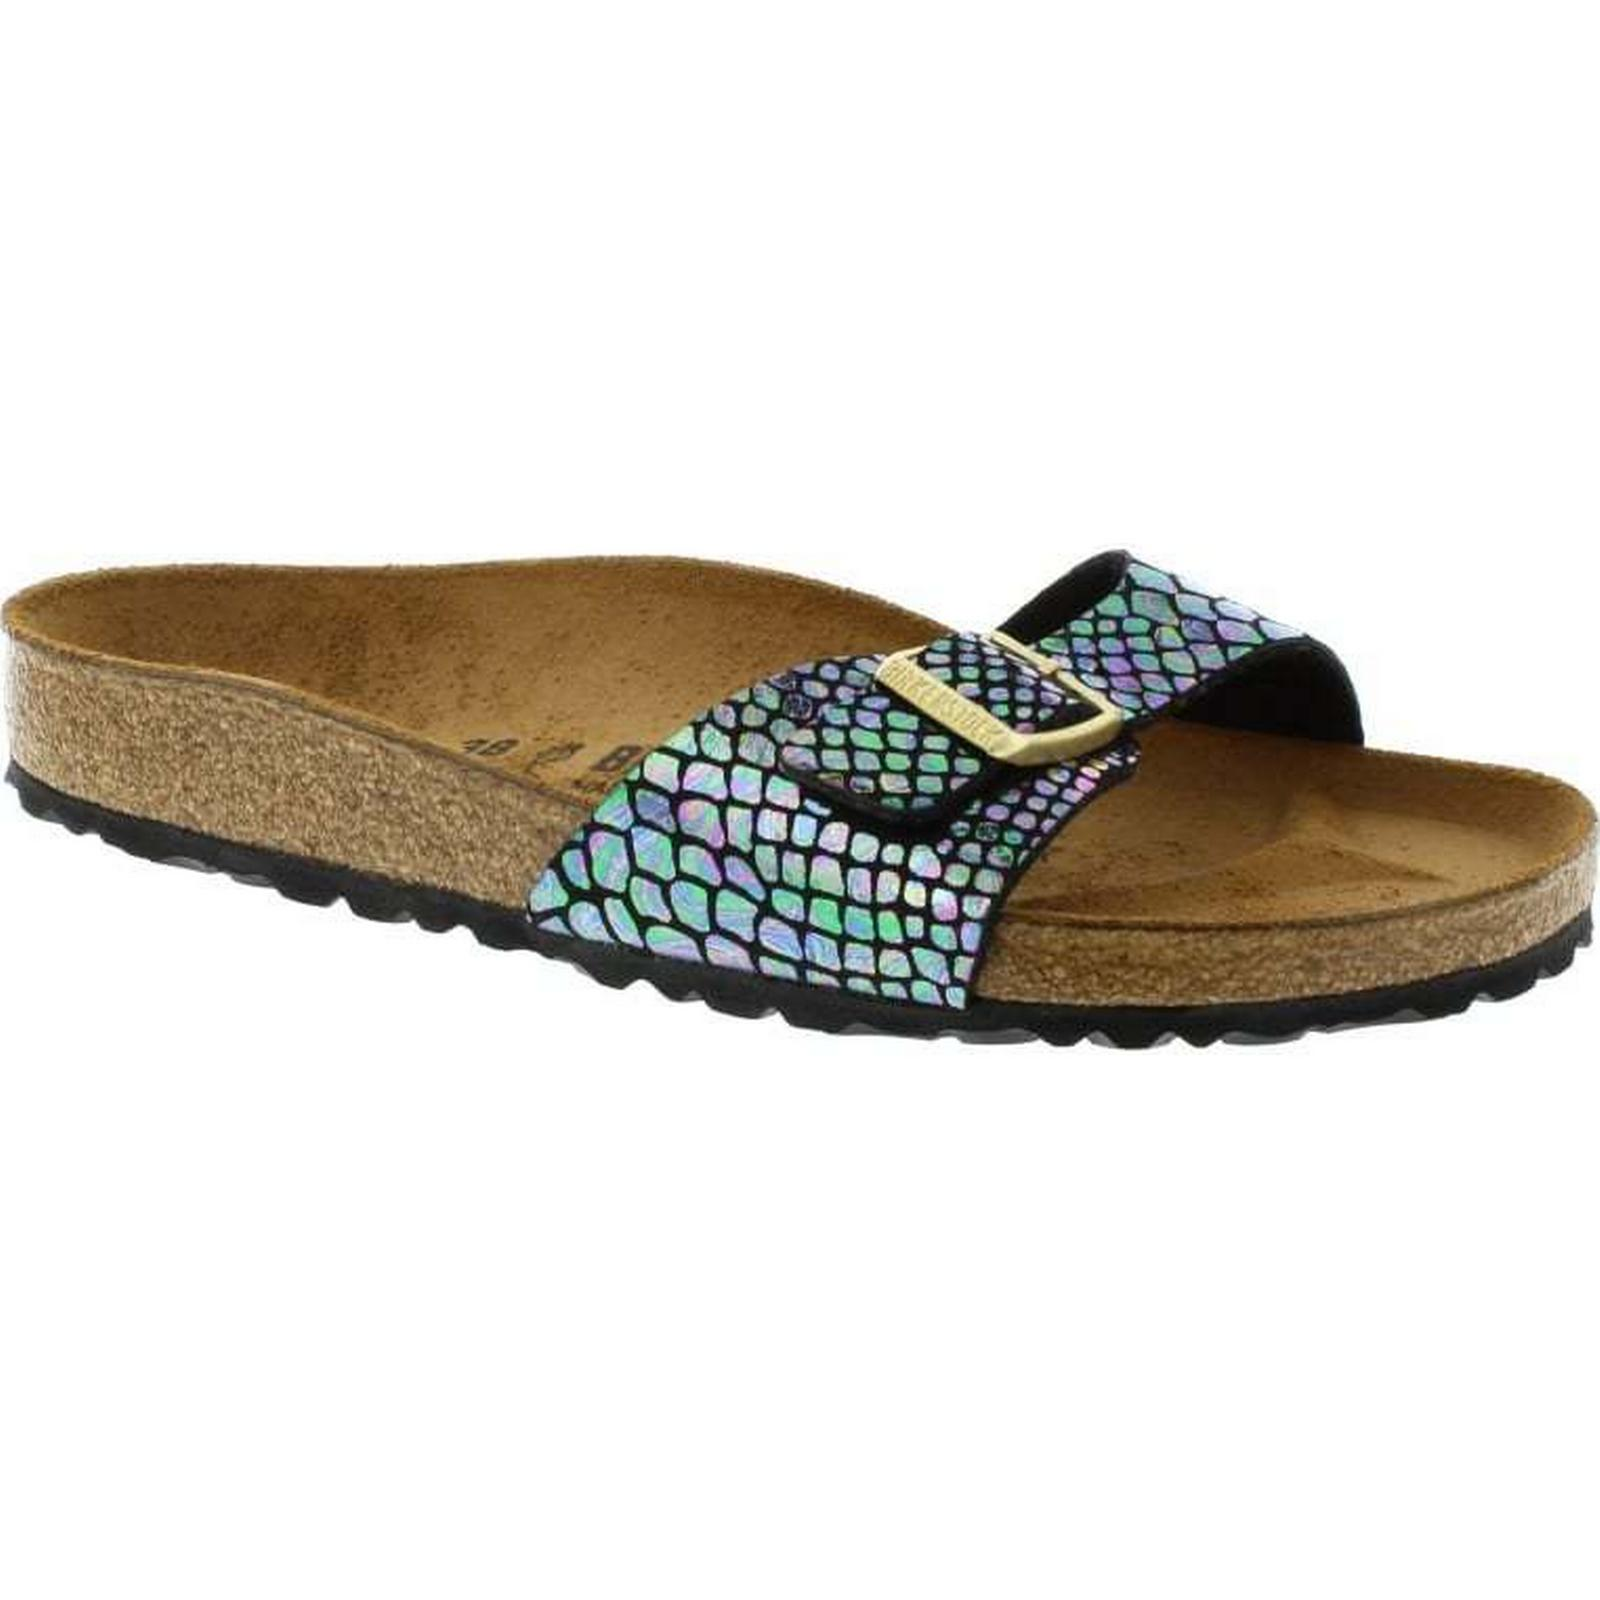 Birkenstock Multi Madrid Regular Fit - Shiny Snake Black Multi Birkenstock 1003460 Size: f705d1